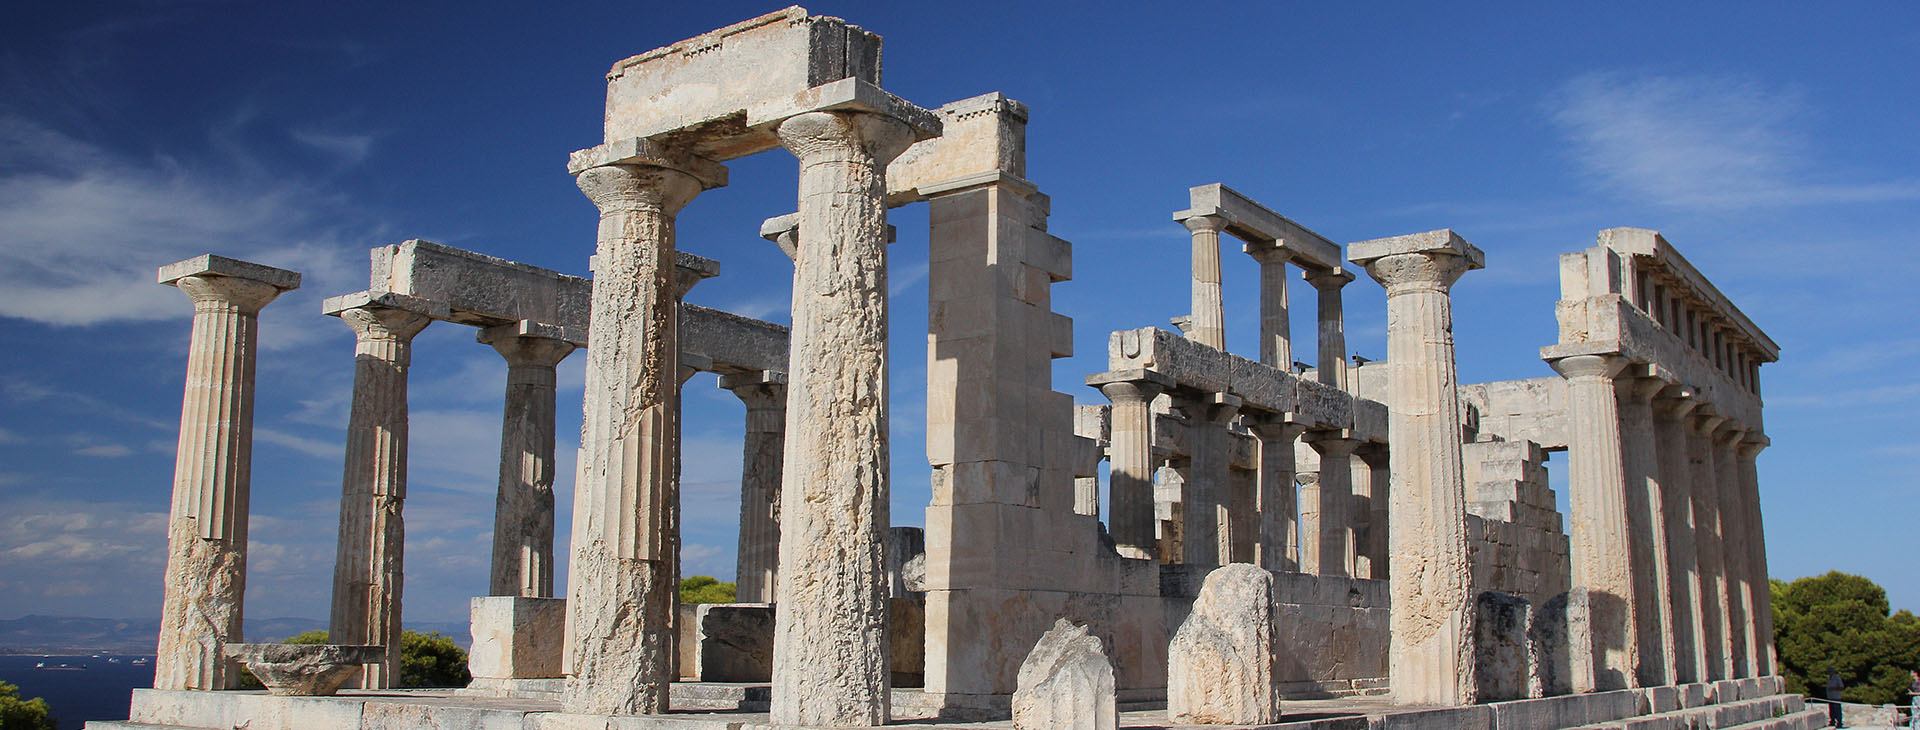 Temple of Aphaia, Aegina island